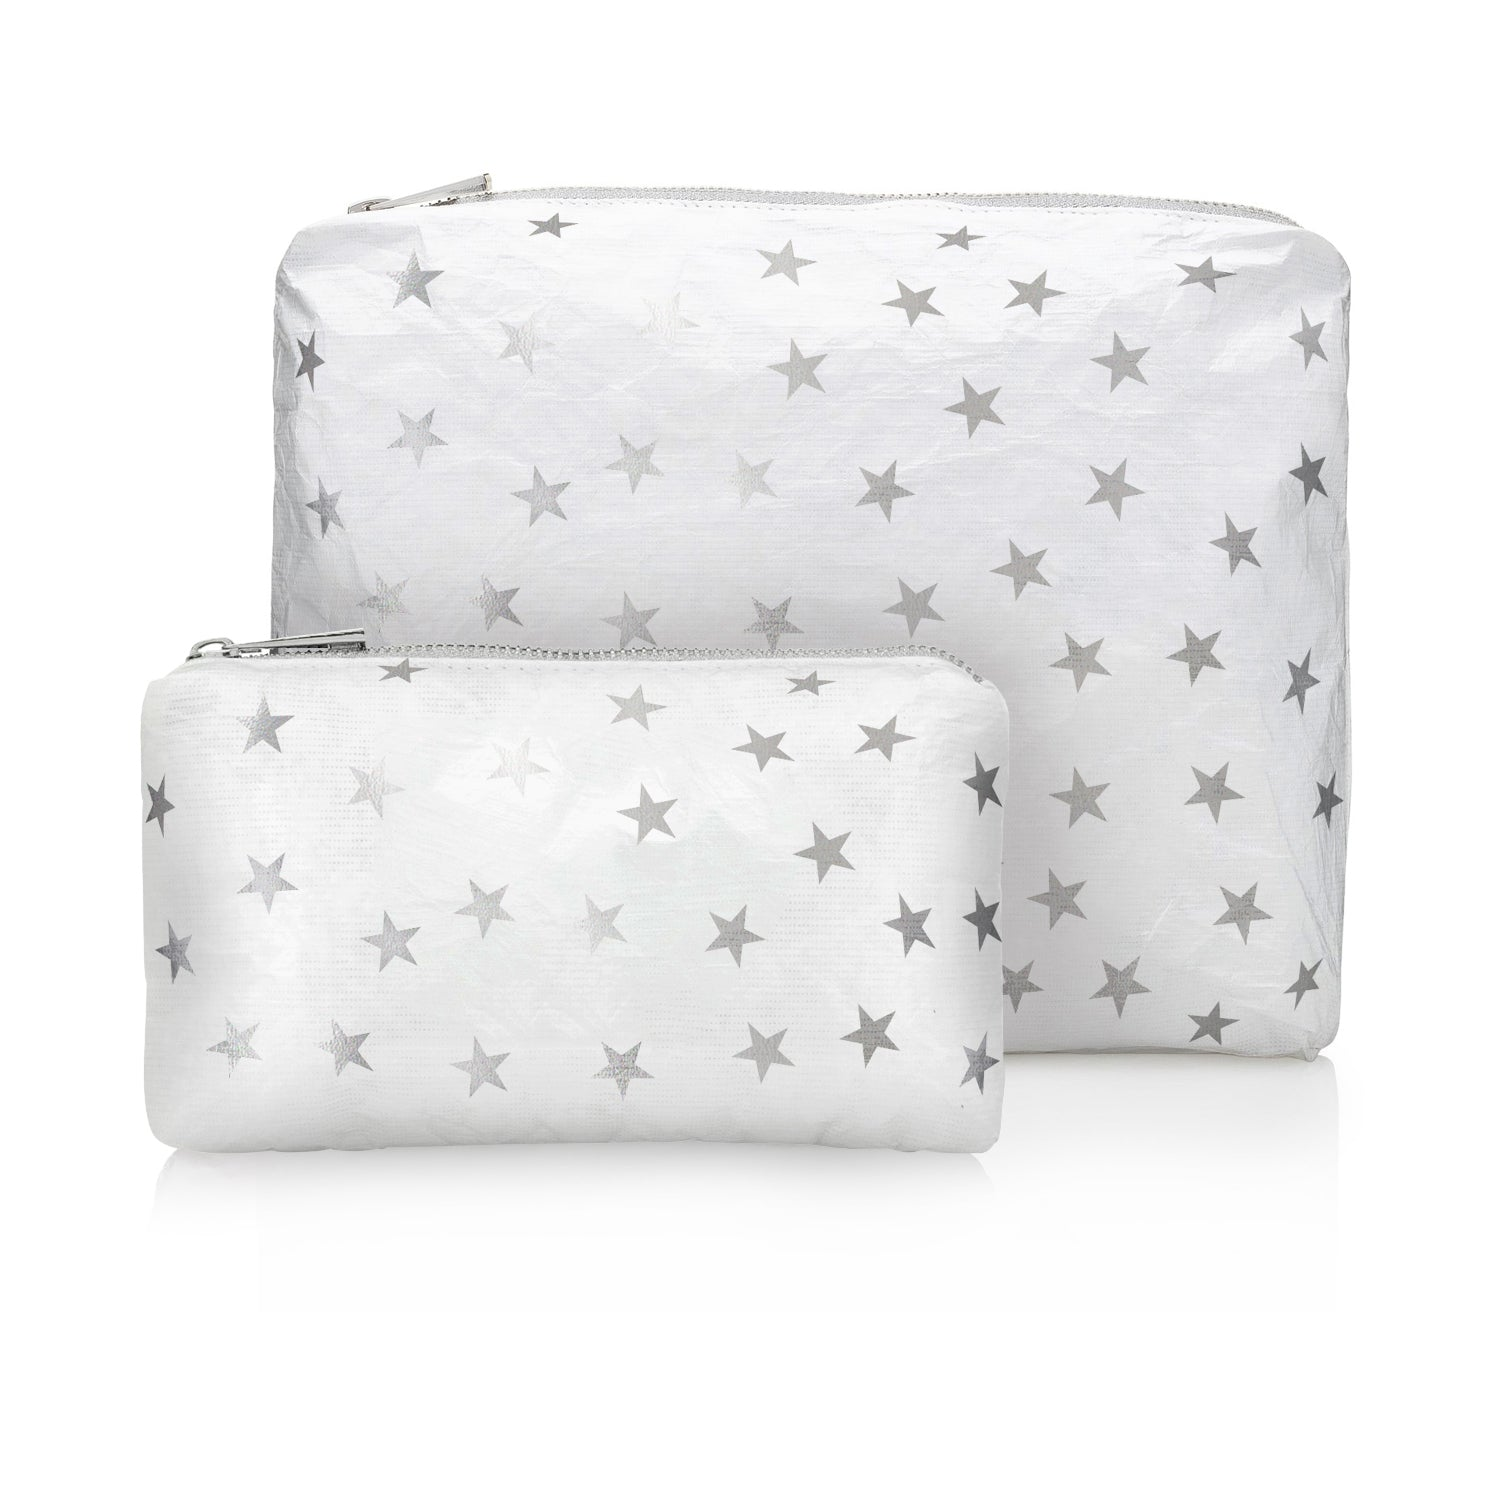 Set of Two - Shimmer White with Myriad Silver Stars